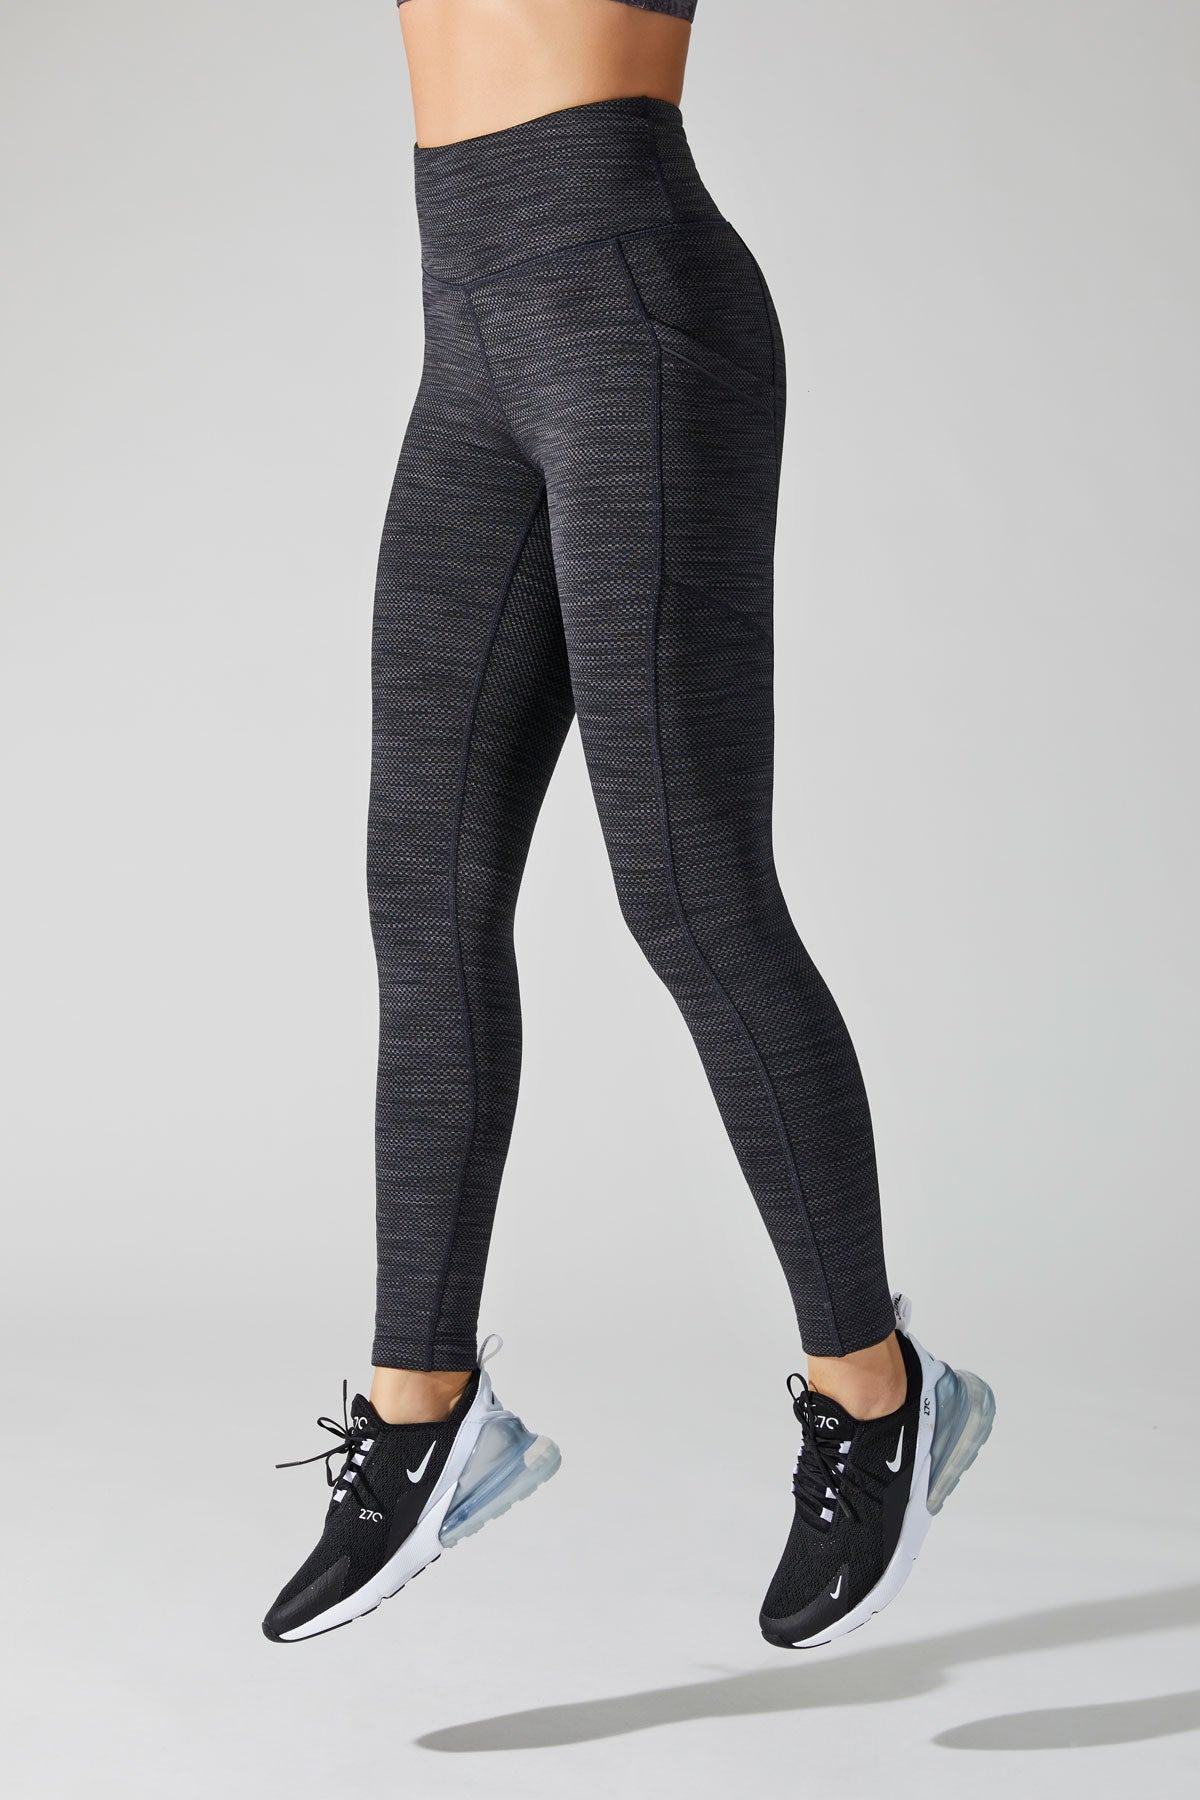 Stamina Active Element leggings by MPG Sport